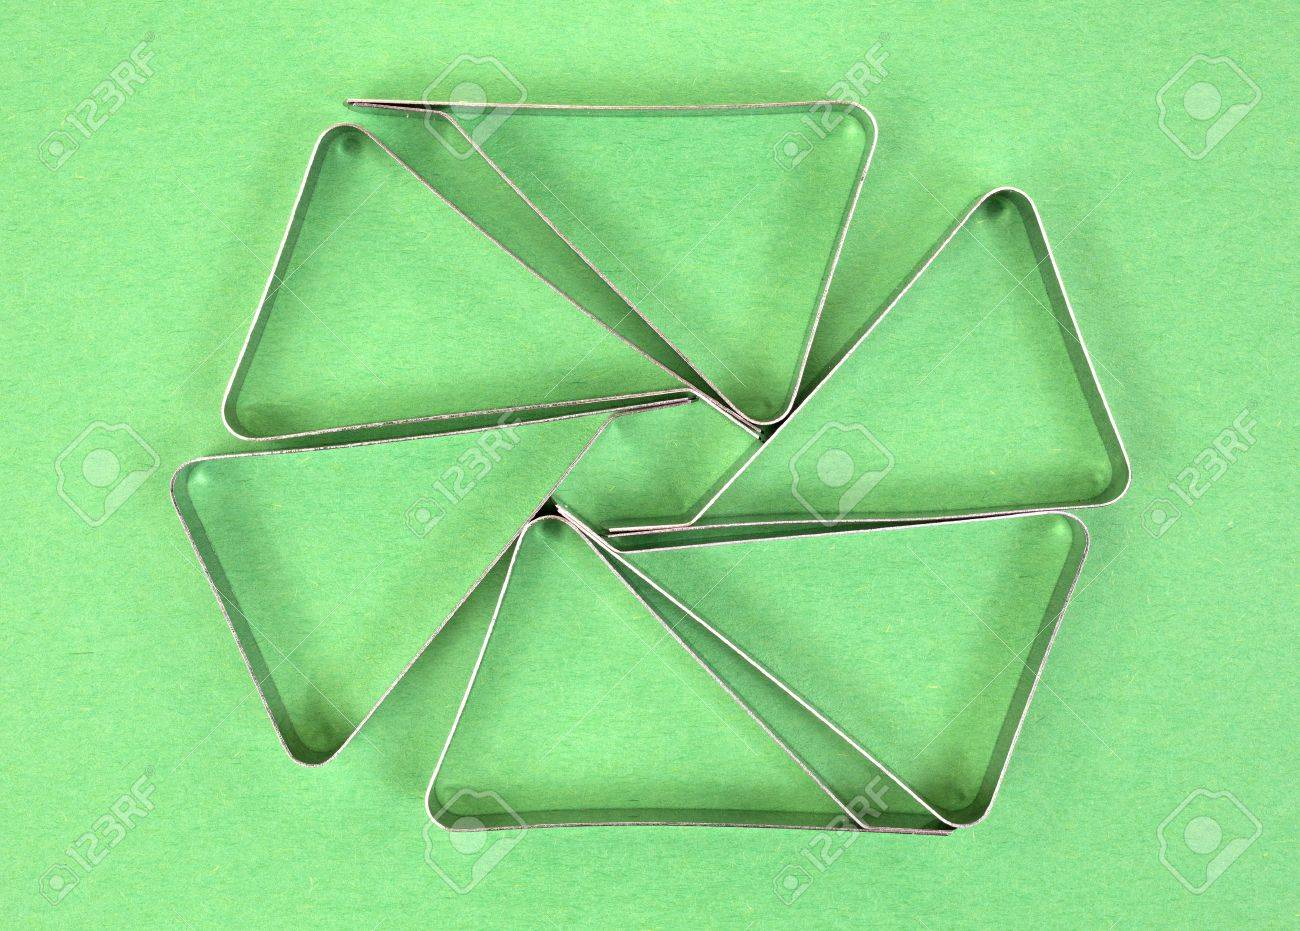 Several stainless steel tablecloth clamps used for keeping tablecloths from blowing from picnic tables on a green background. Stock Photo - 20721412